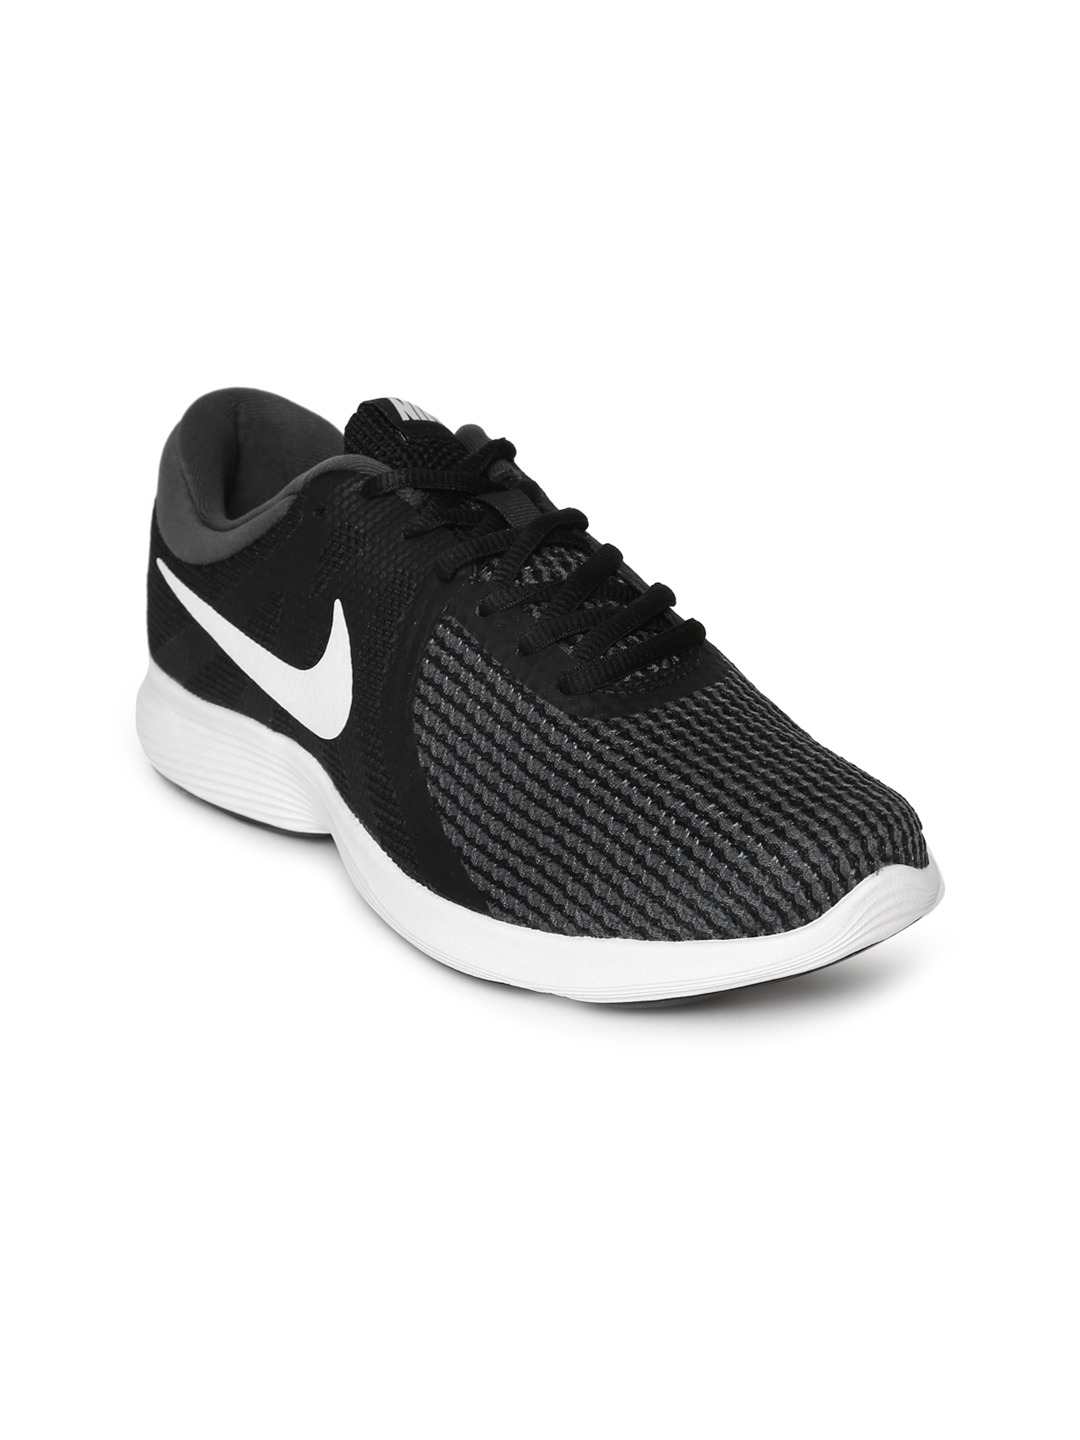 041e1a2d44c Buy Nike Women Black REVOLUTION 4 Running Shoes - Sports Shoes for ...